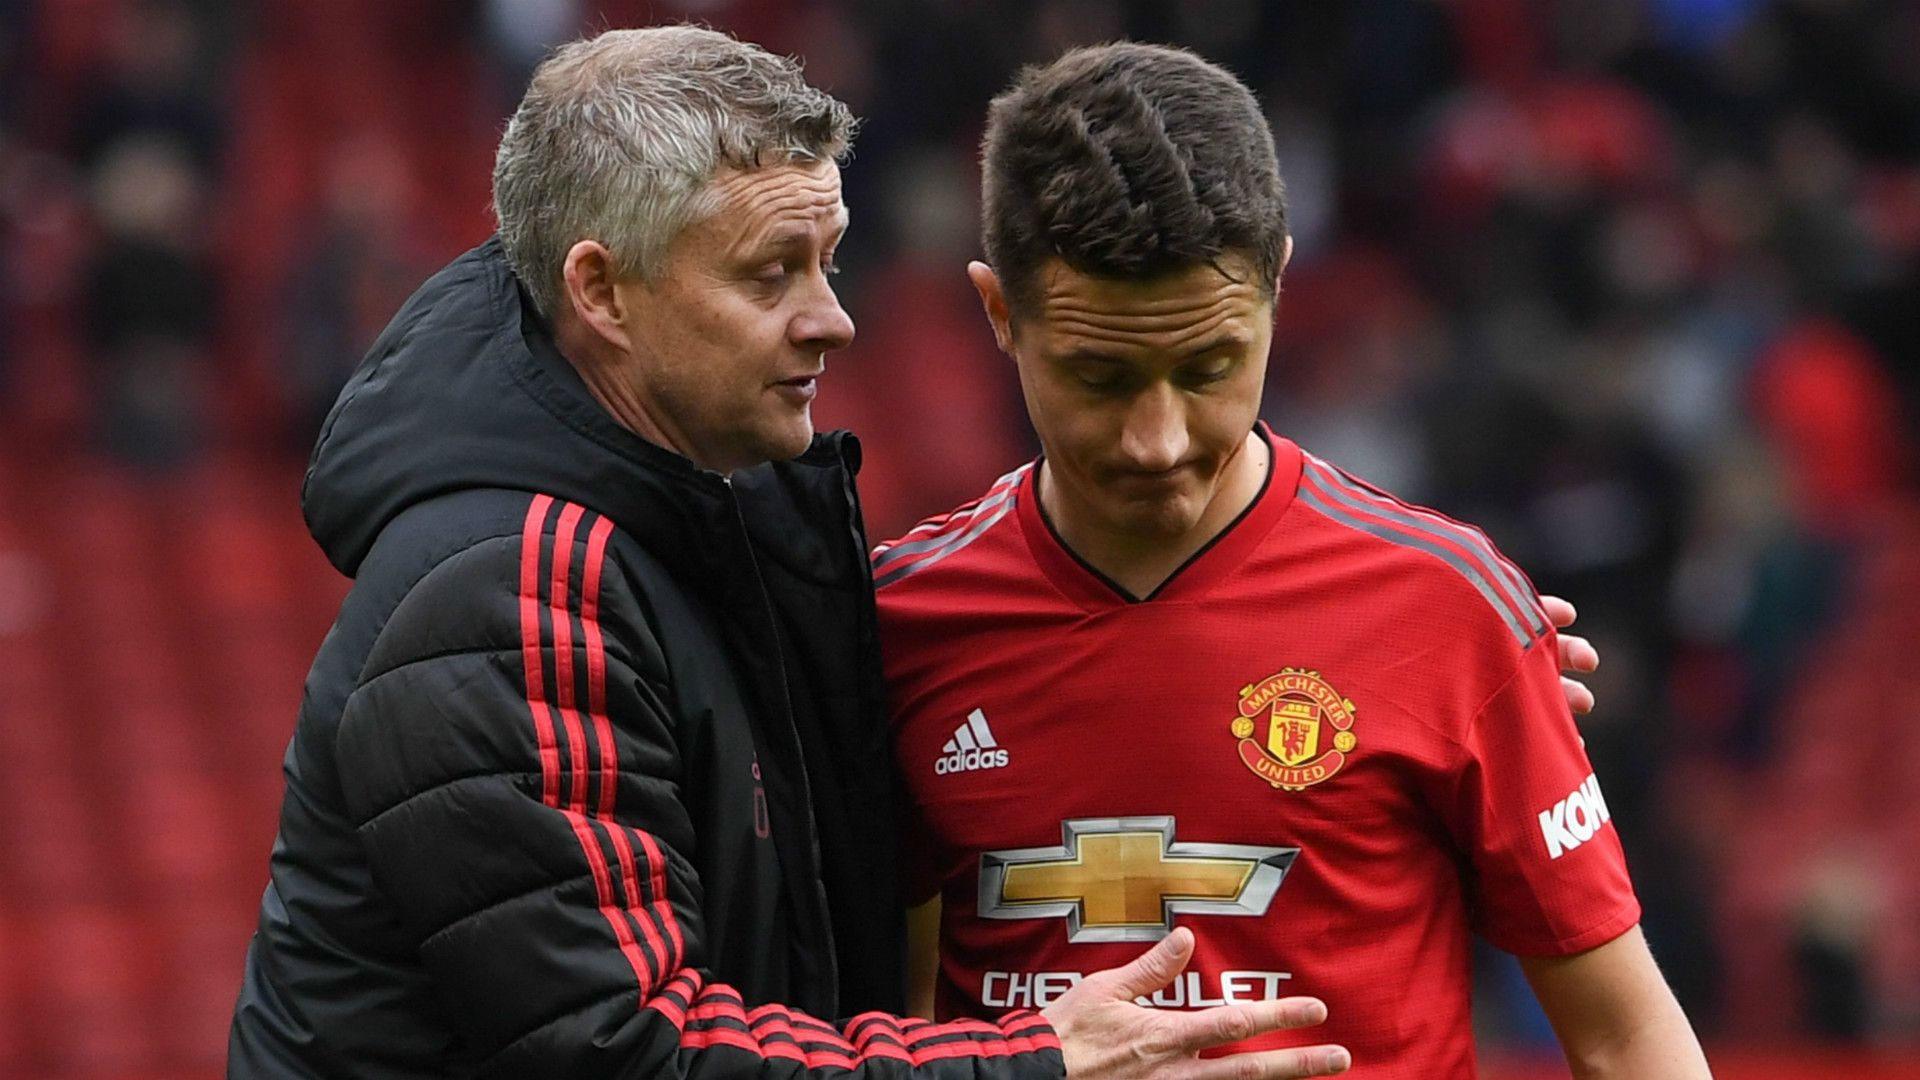 Football is not the most important thing for United